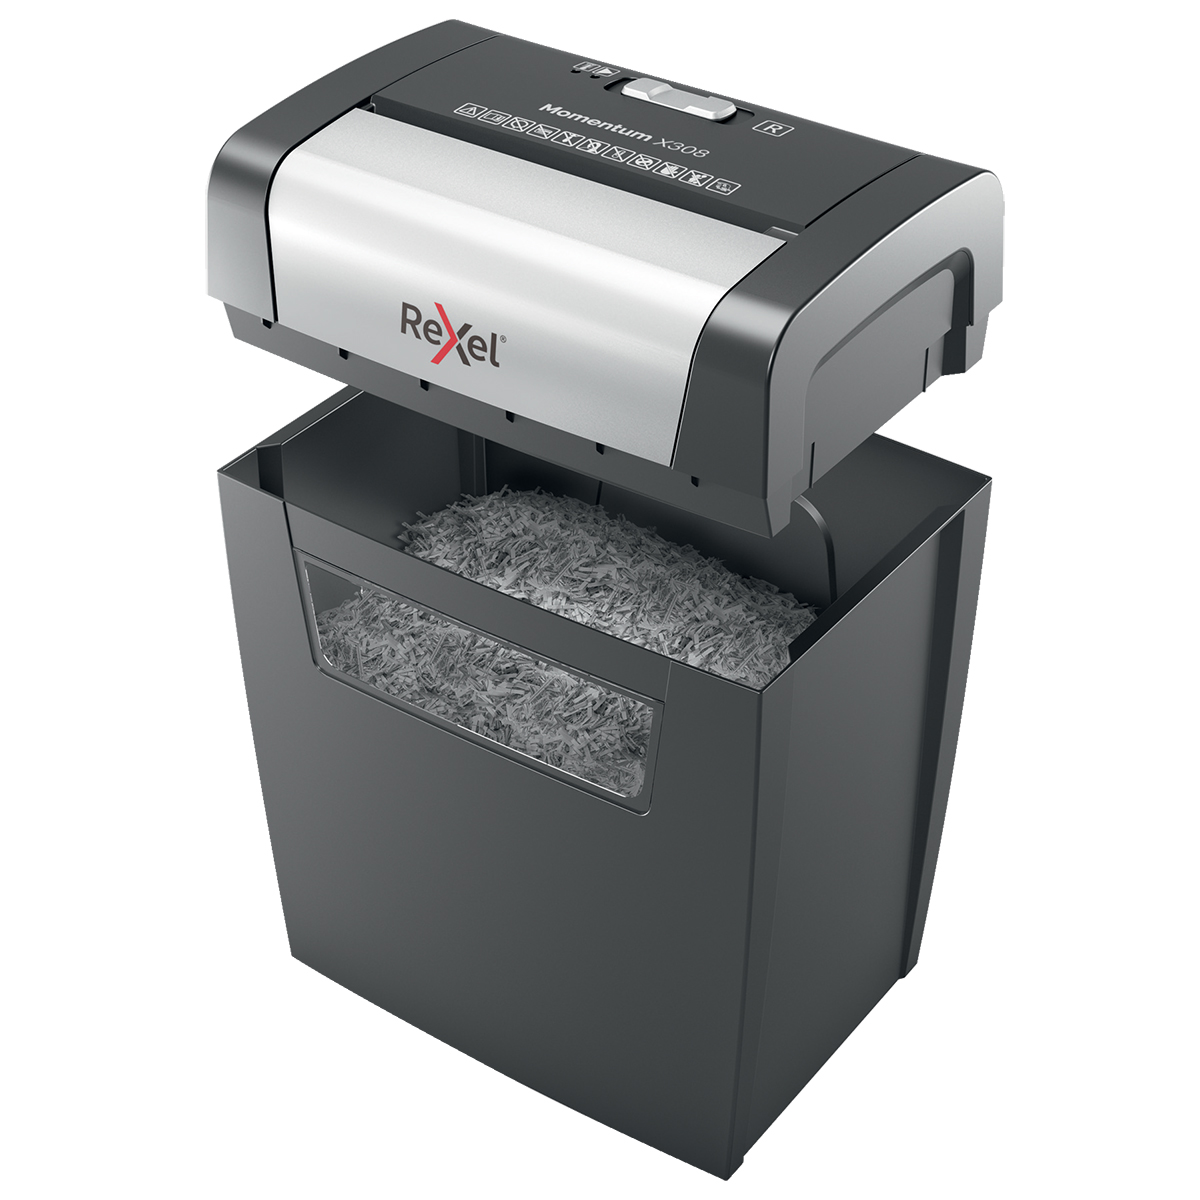 Rexel Momentum X308 Cross Cut Shredder